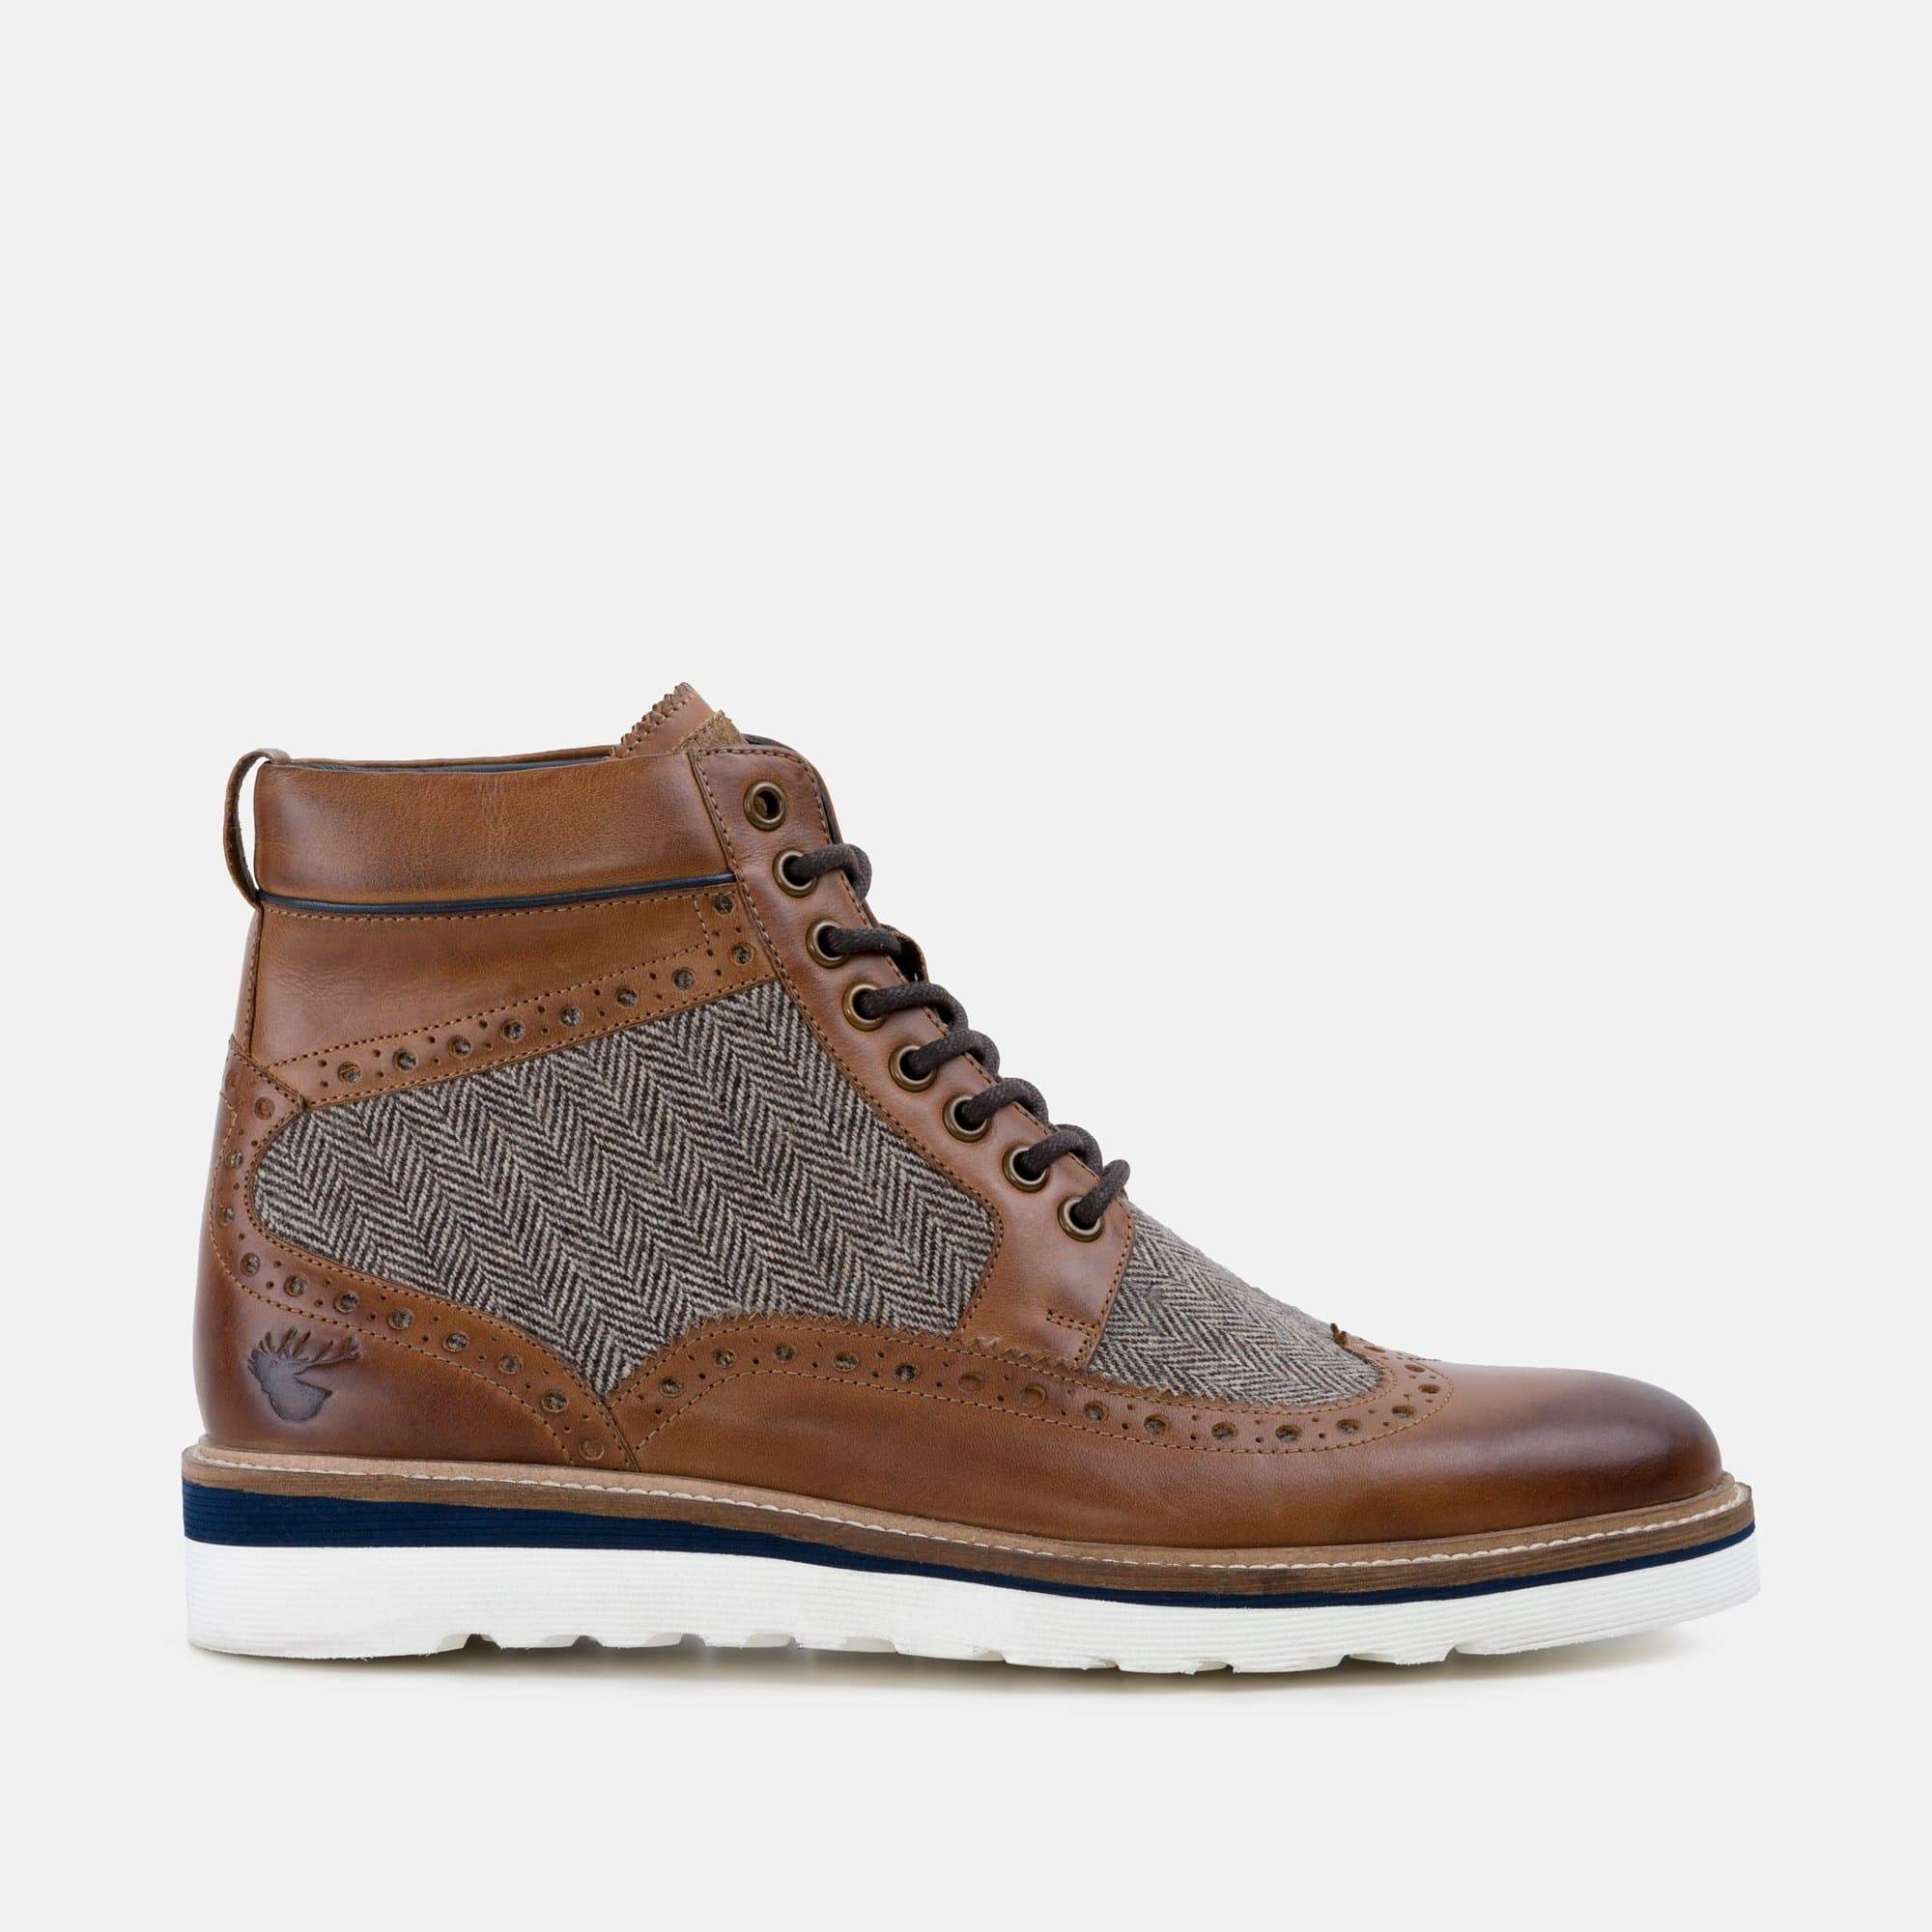 Goodwin Smith Footwear AW19 Linwood Tan Leather Wedge Boot